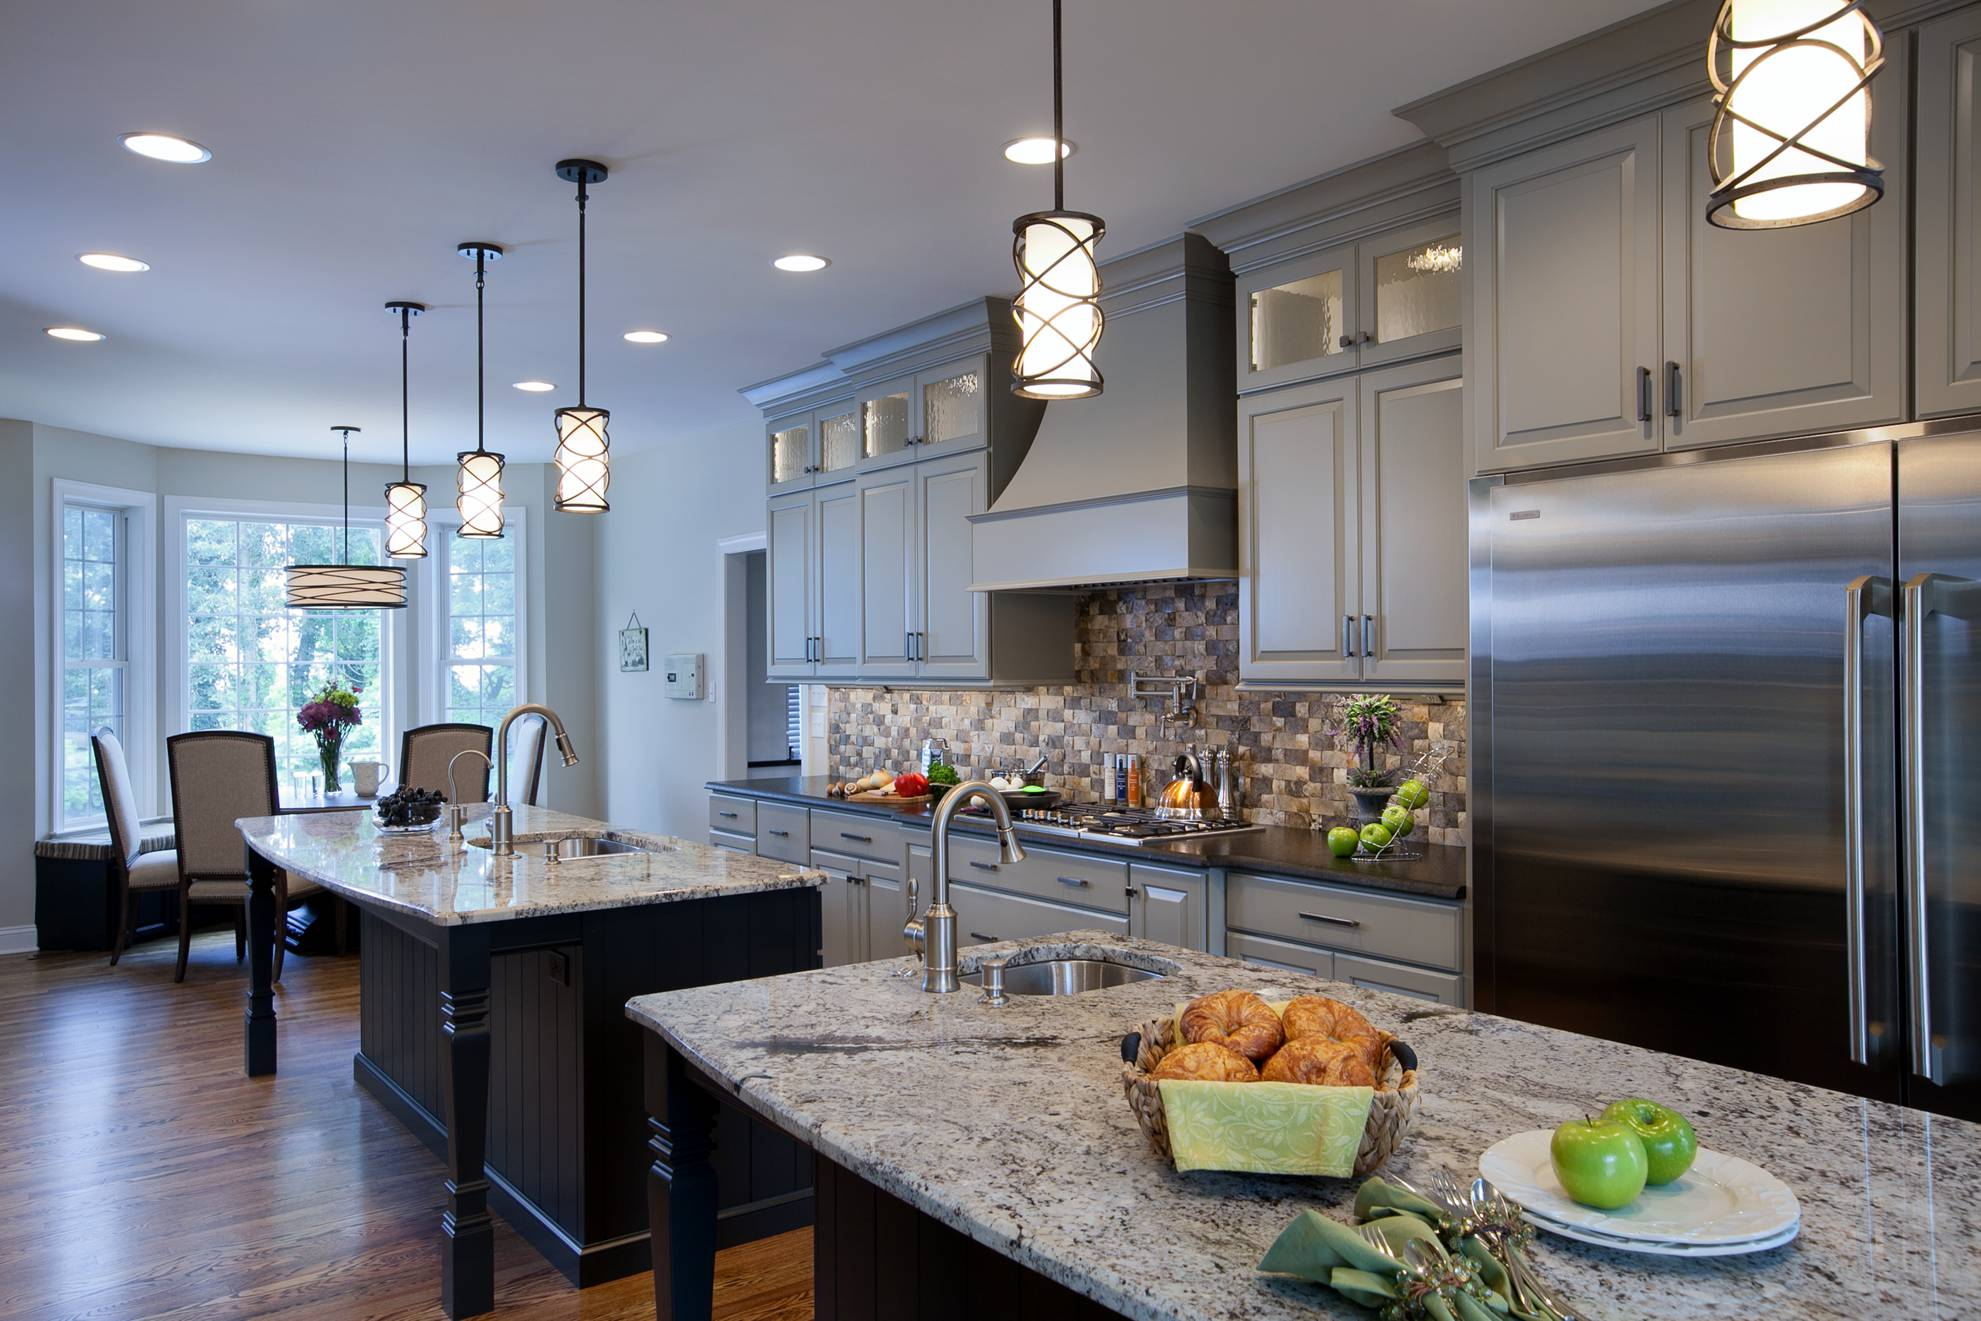 Kitchen Cabinets York Pa ▻ kitchen remodel : shelter kitchen remodeling york pa kitchen